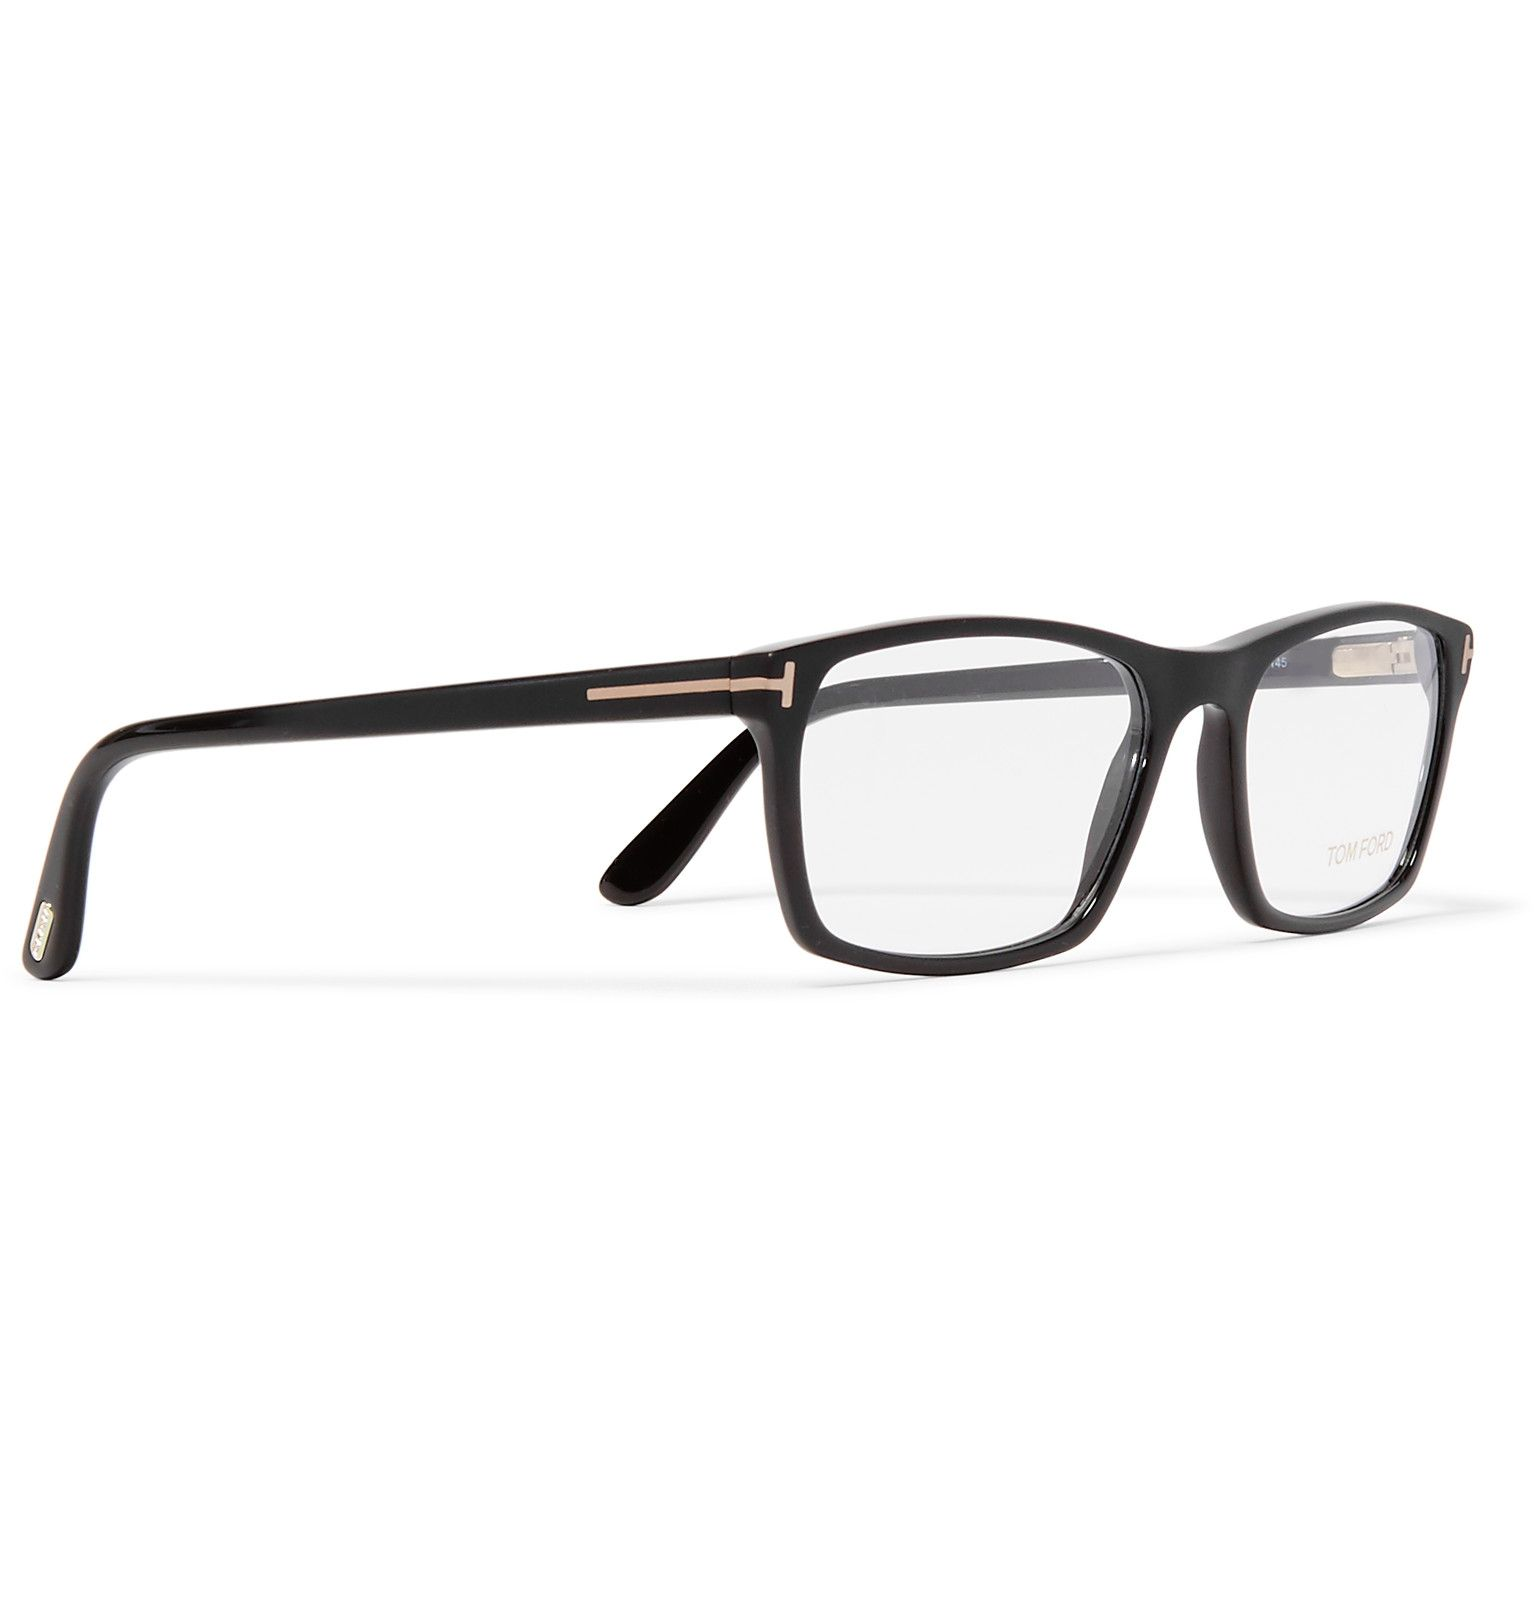 d2ec6ae7e3 TOM FORD s optical glasses are crafted in Italy from matte-acetate and  offset with smart gold accents